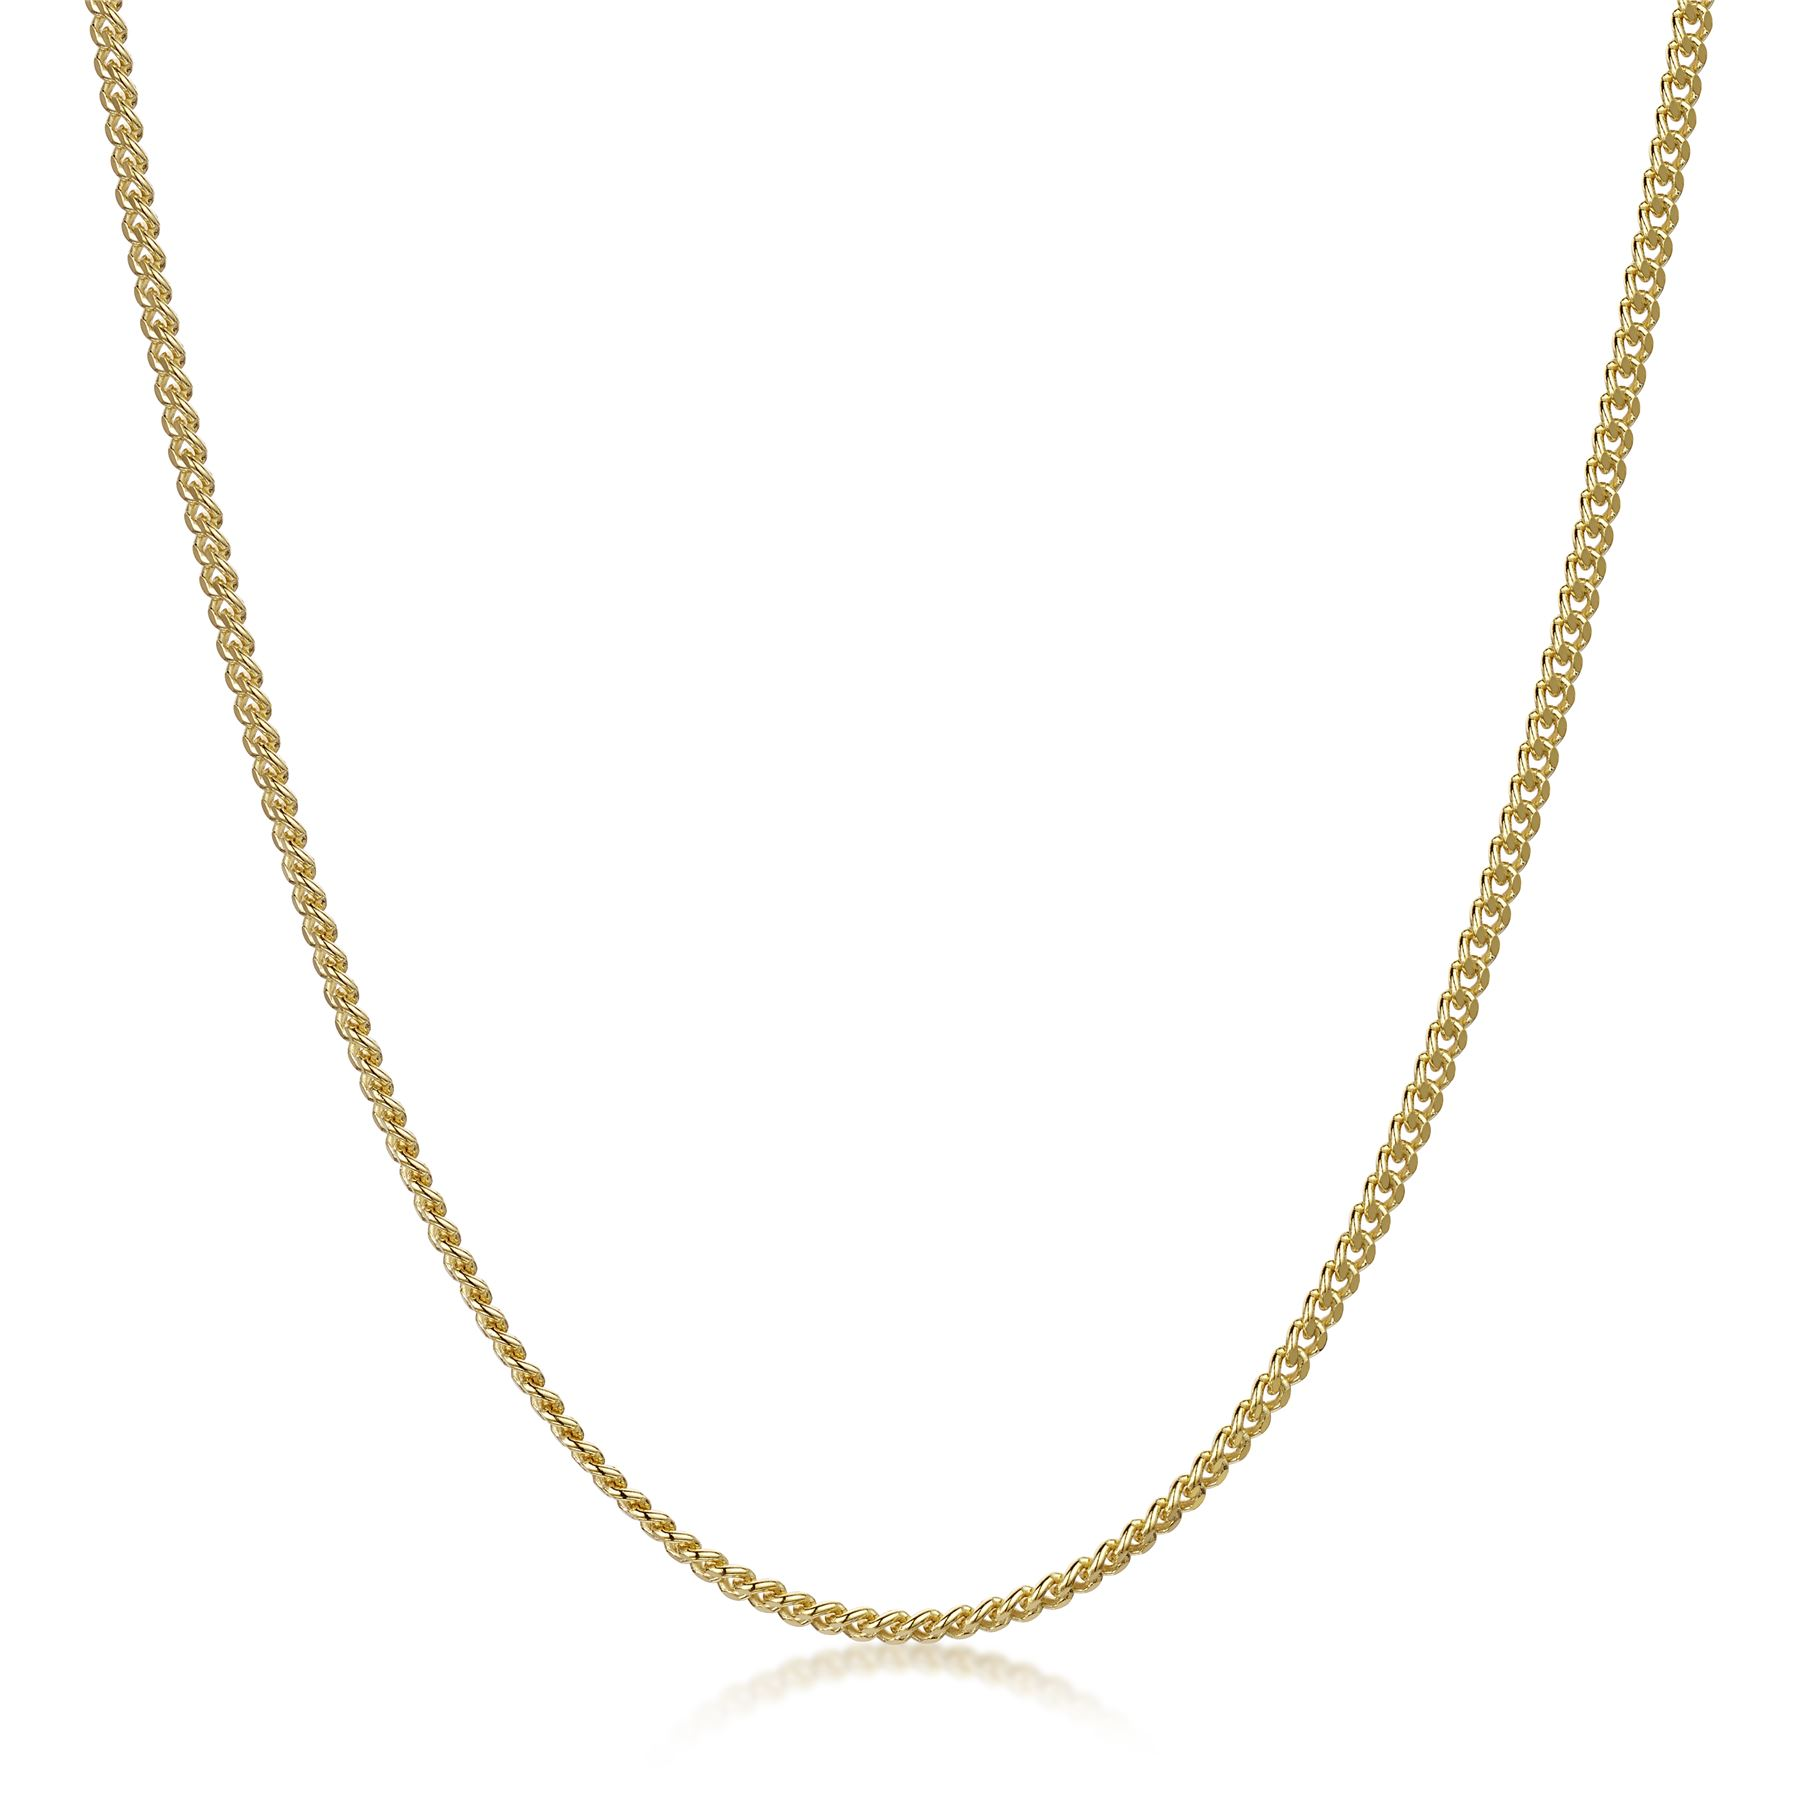 Amberta-Jewelry-Gold-Plated-on-Real-925-Sterling-Silver-Necklace-Chain-Italy thumbnail 31